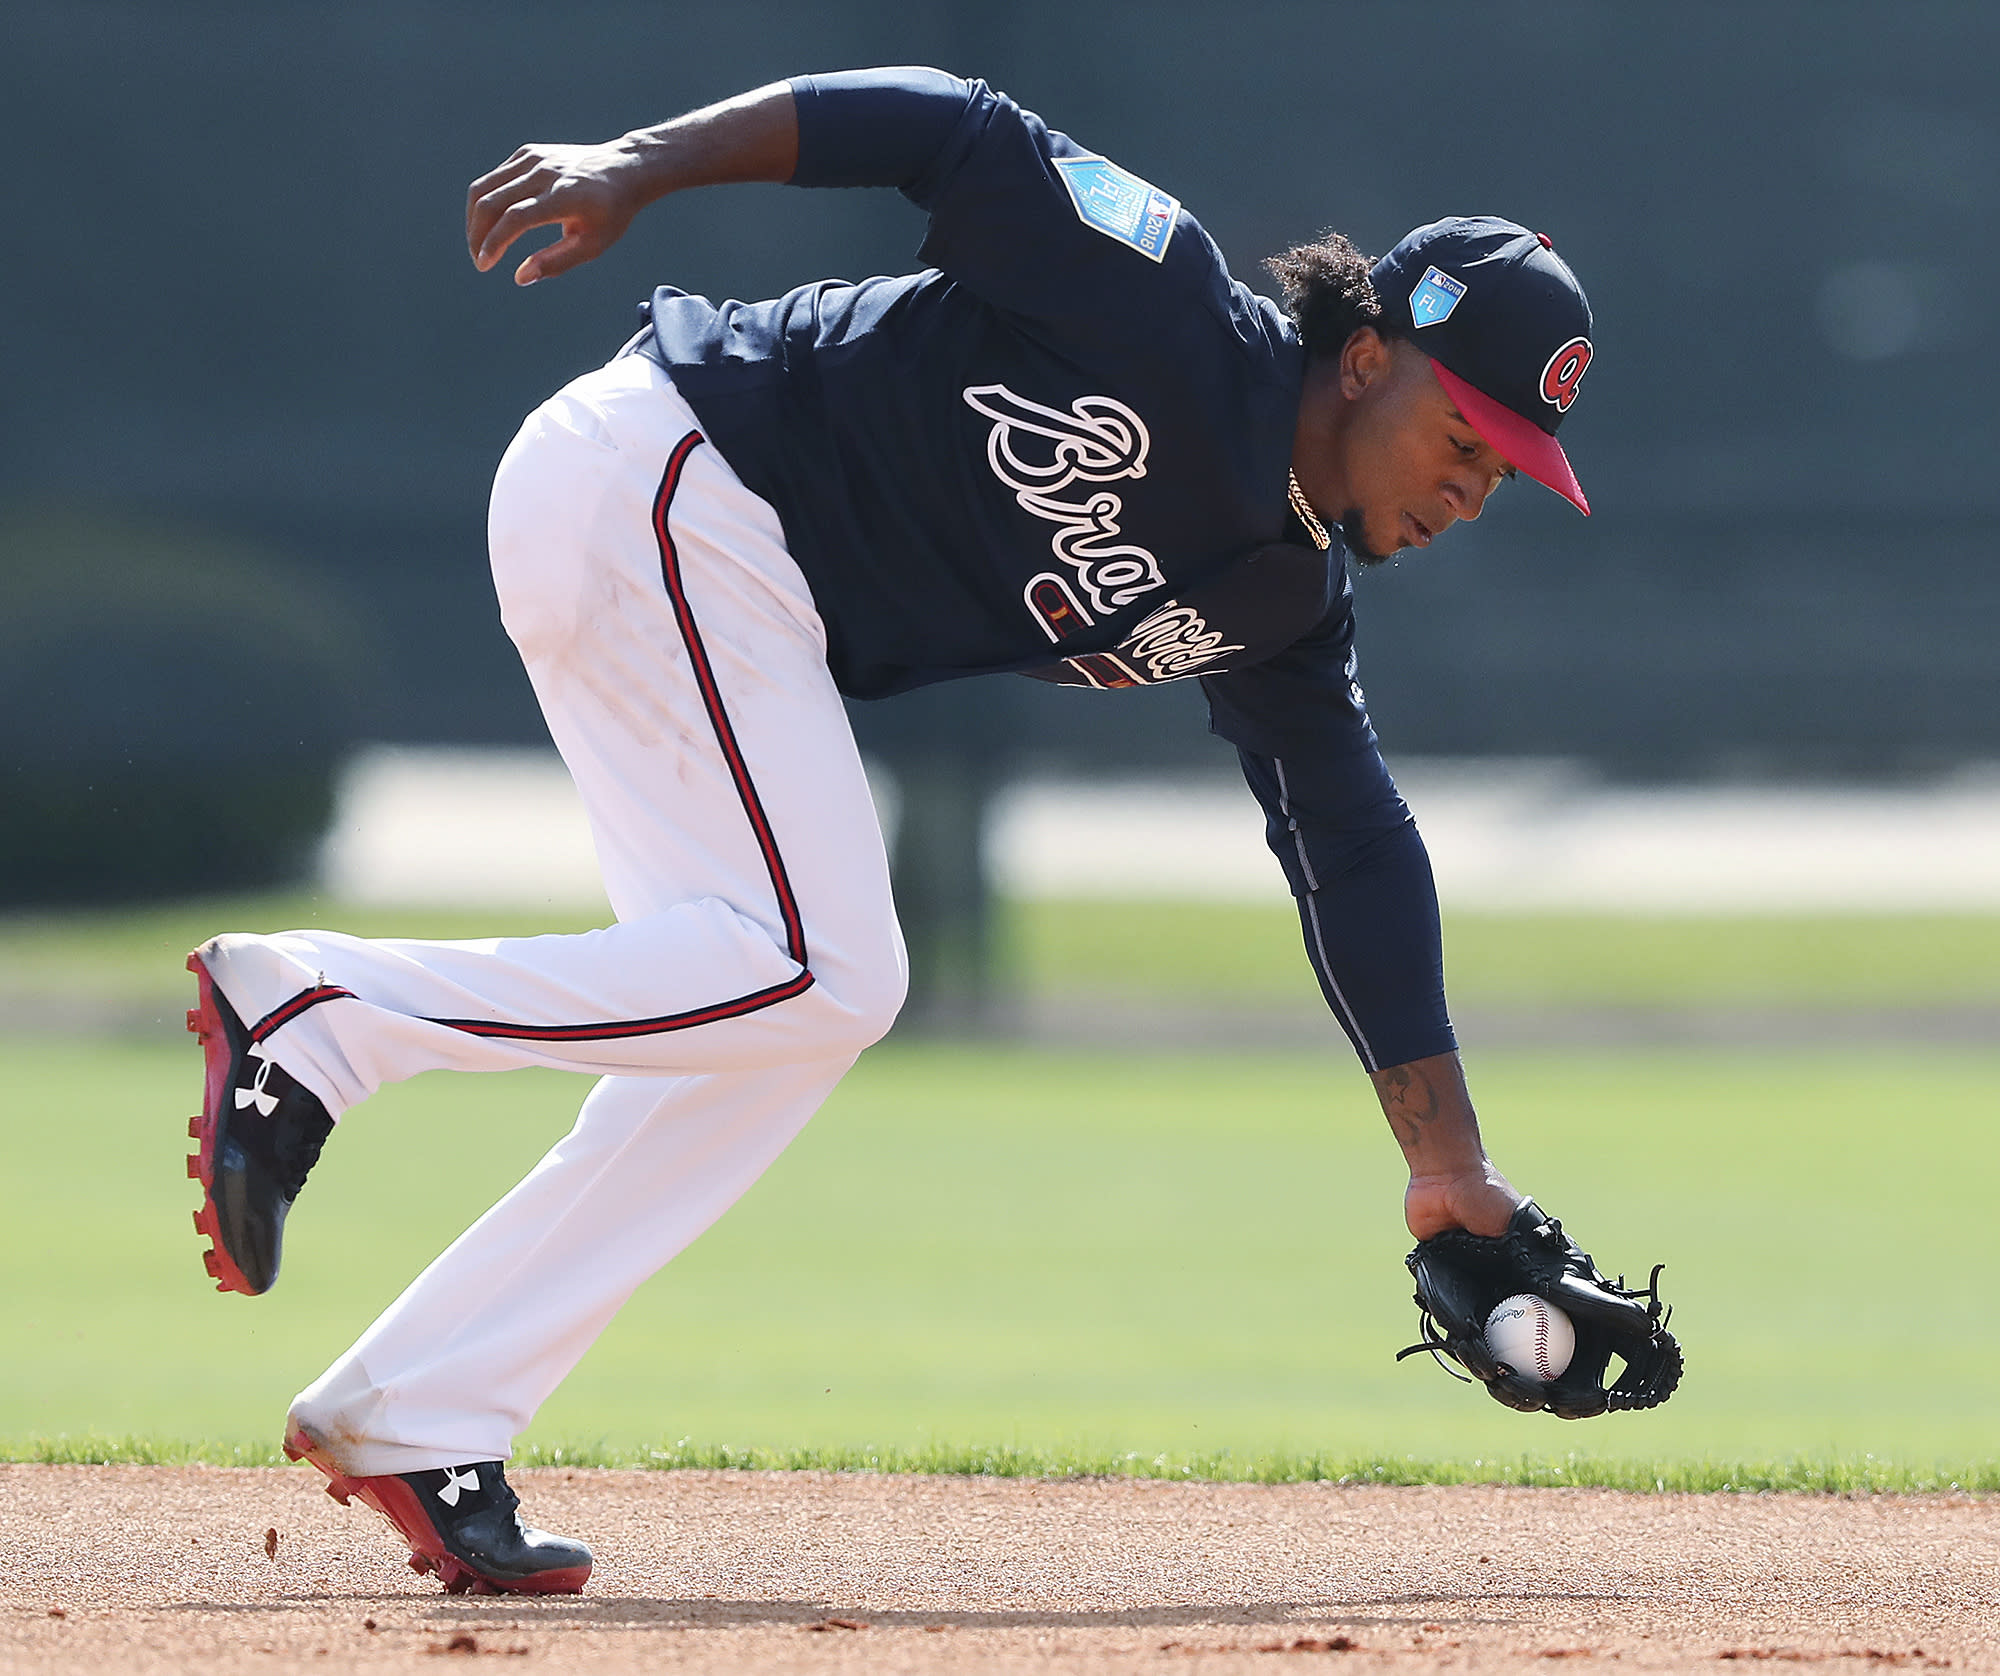 Ozzie Albies could be ready for MLB stardom at age 21